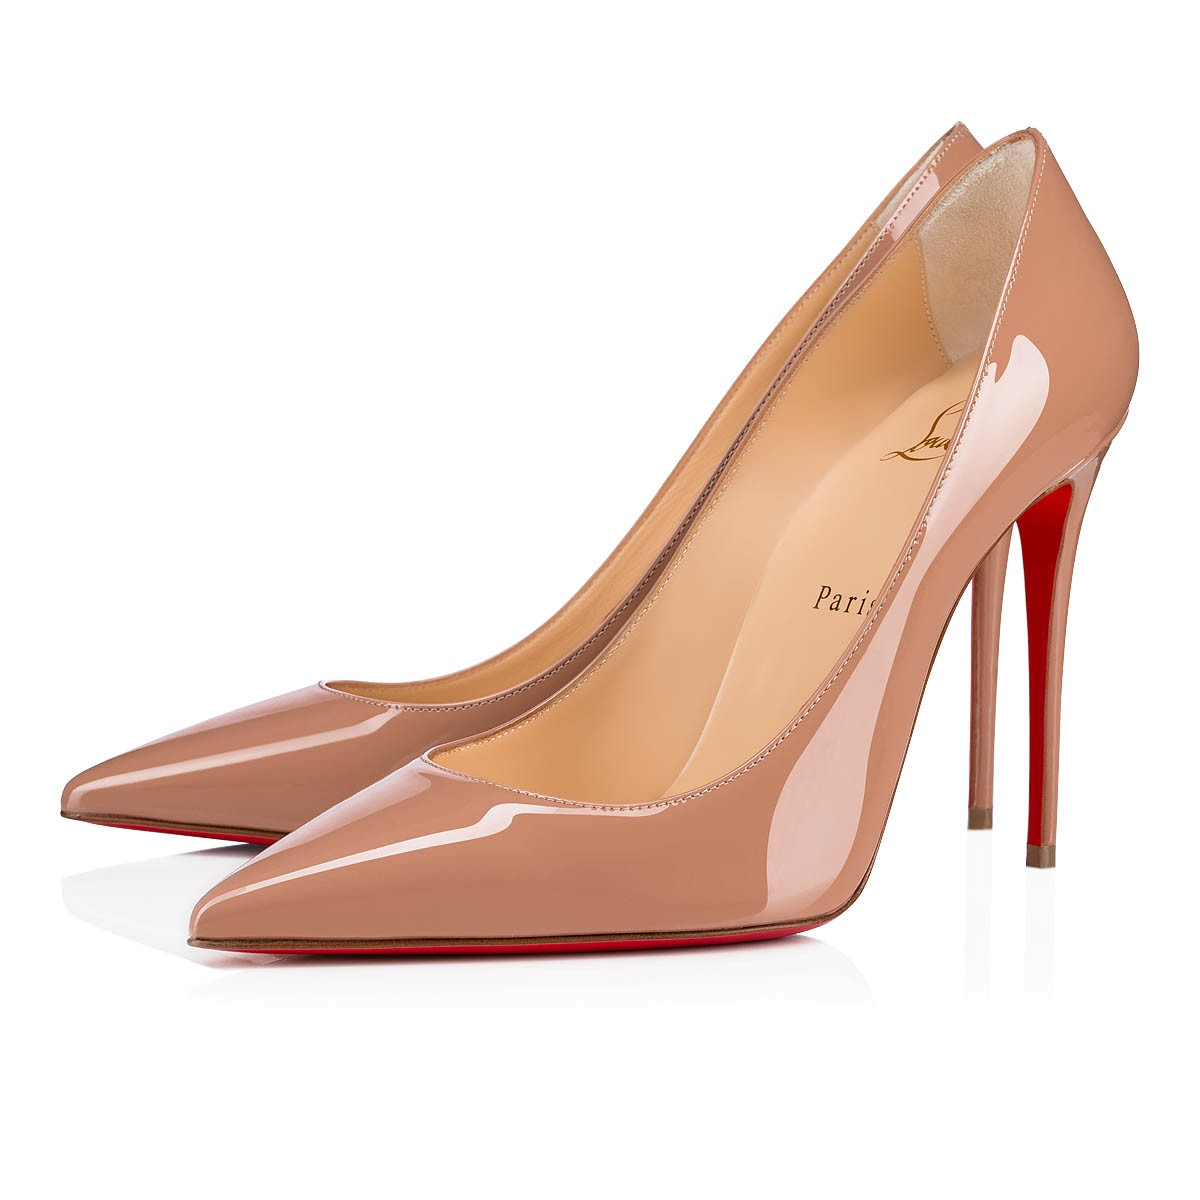 KATE 100 Nude Patent Leather - Women